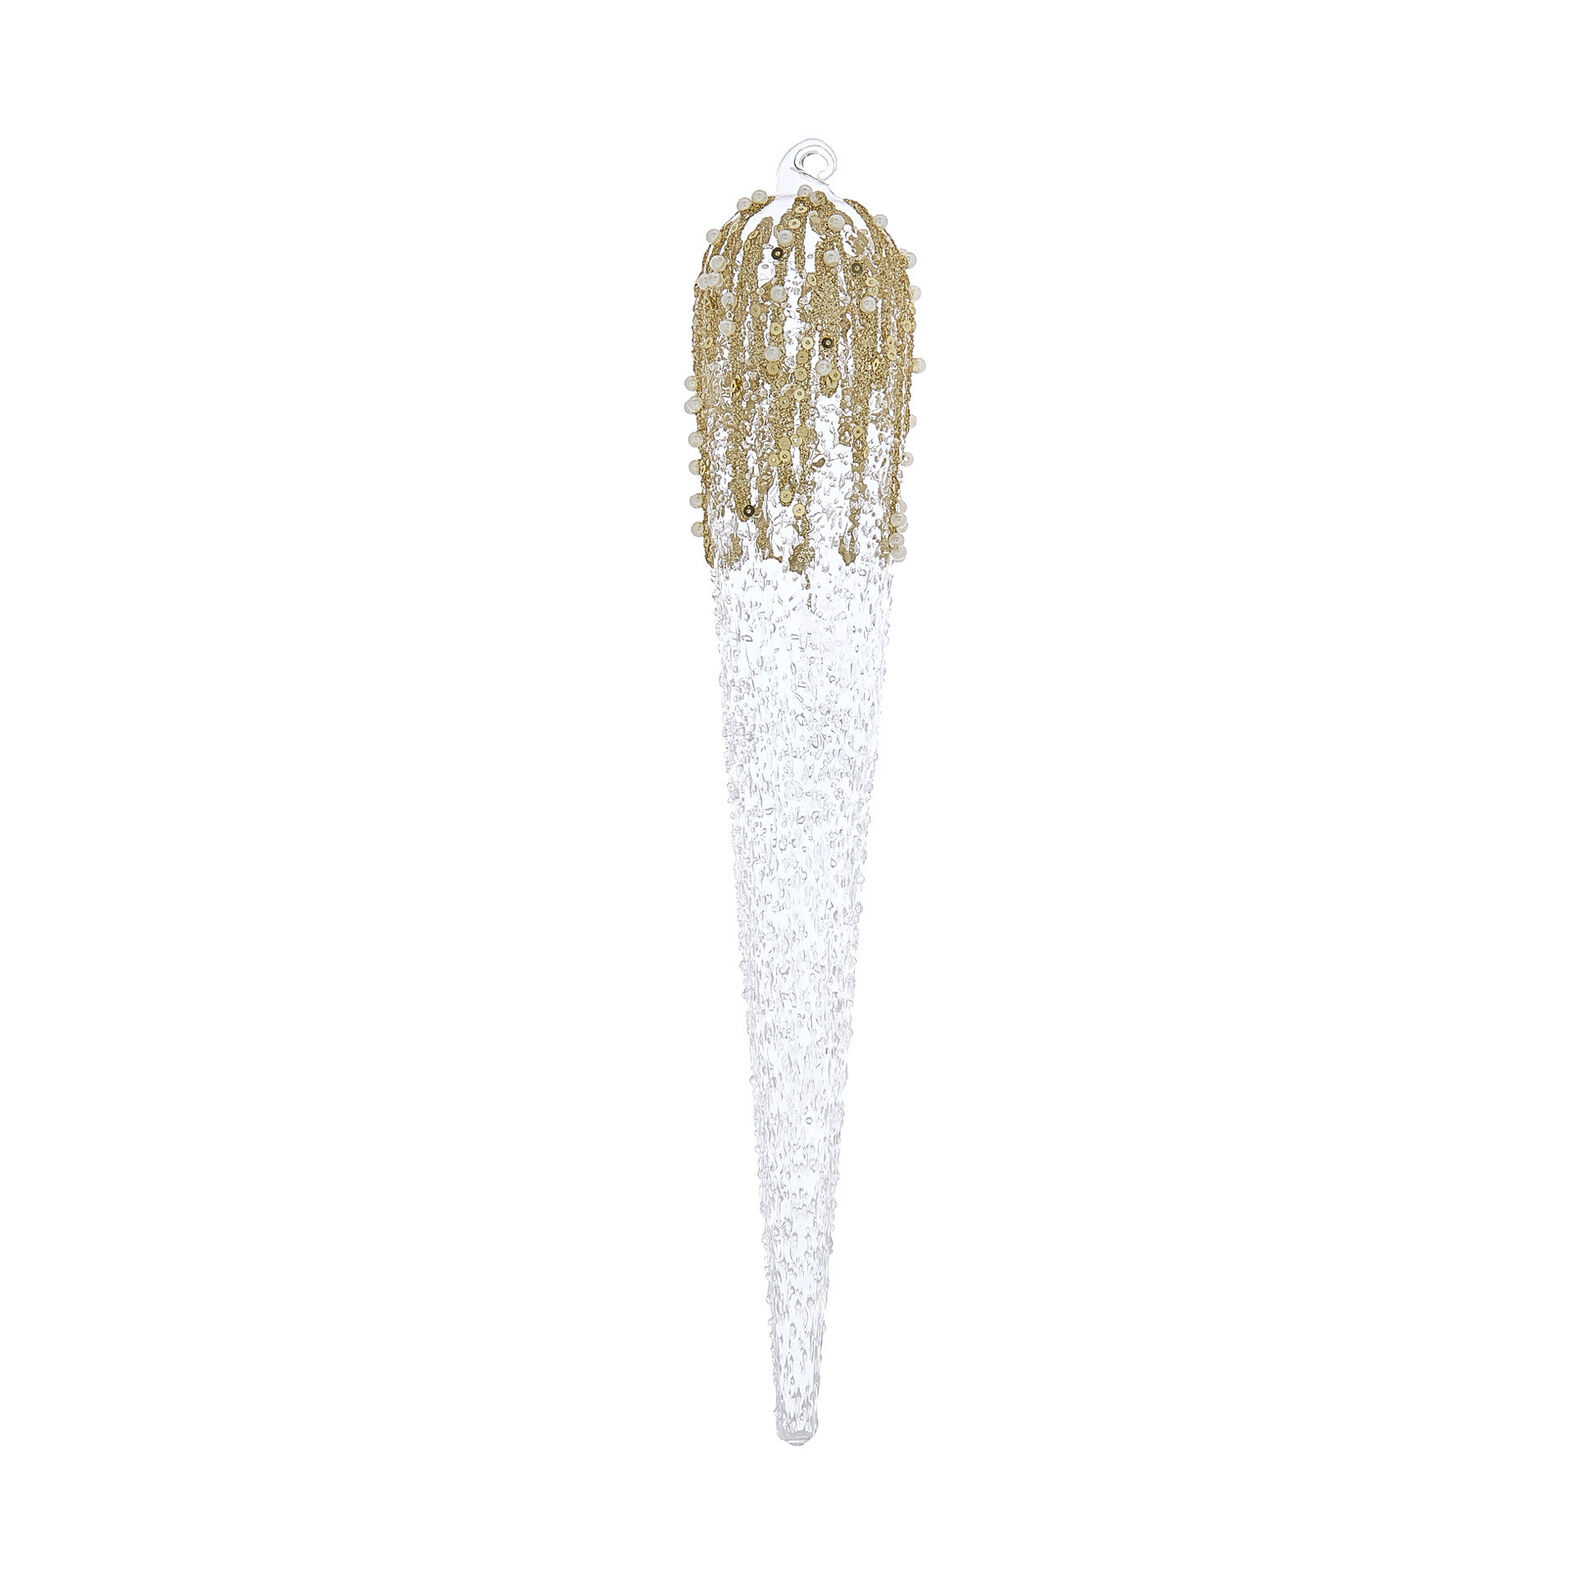 Hand-decorated glitter spindle